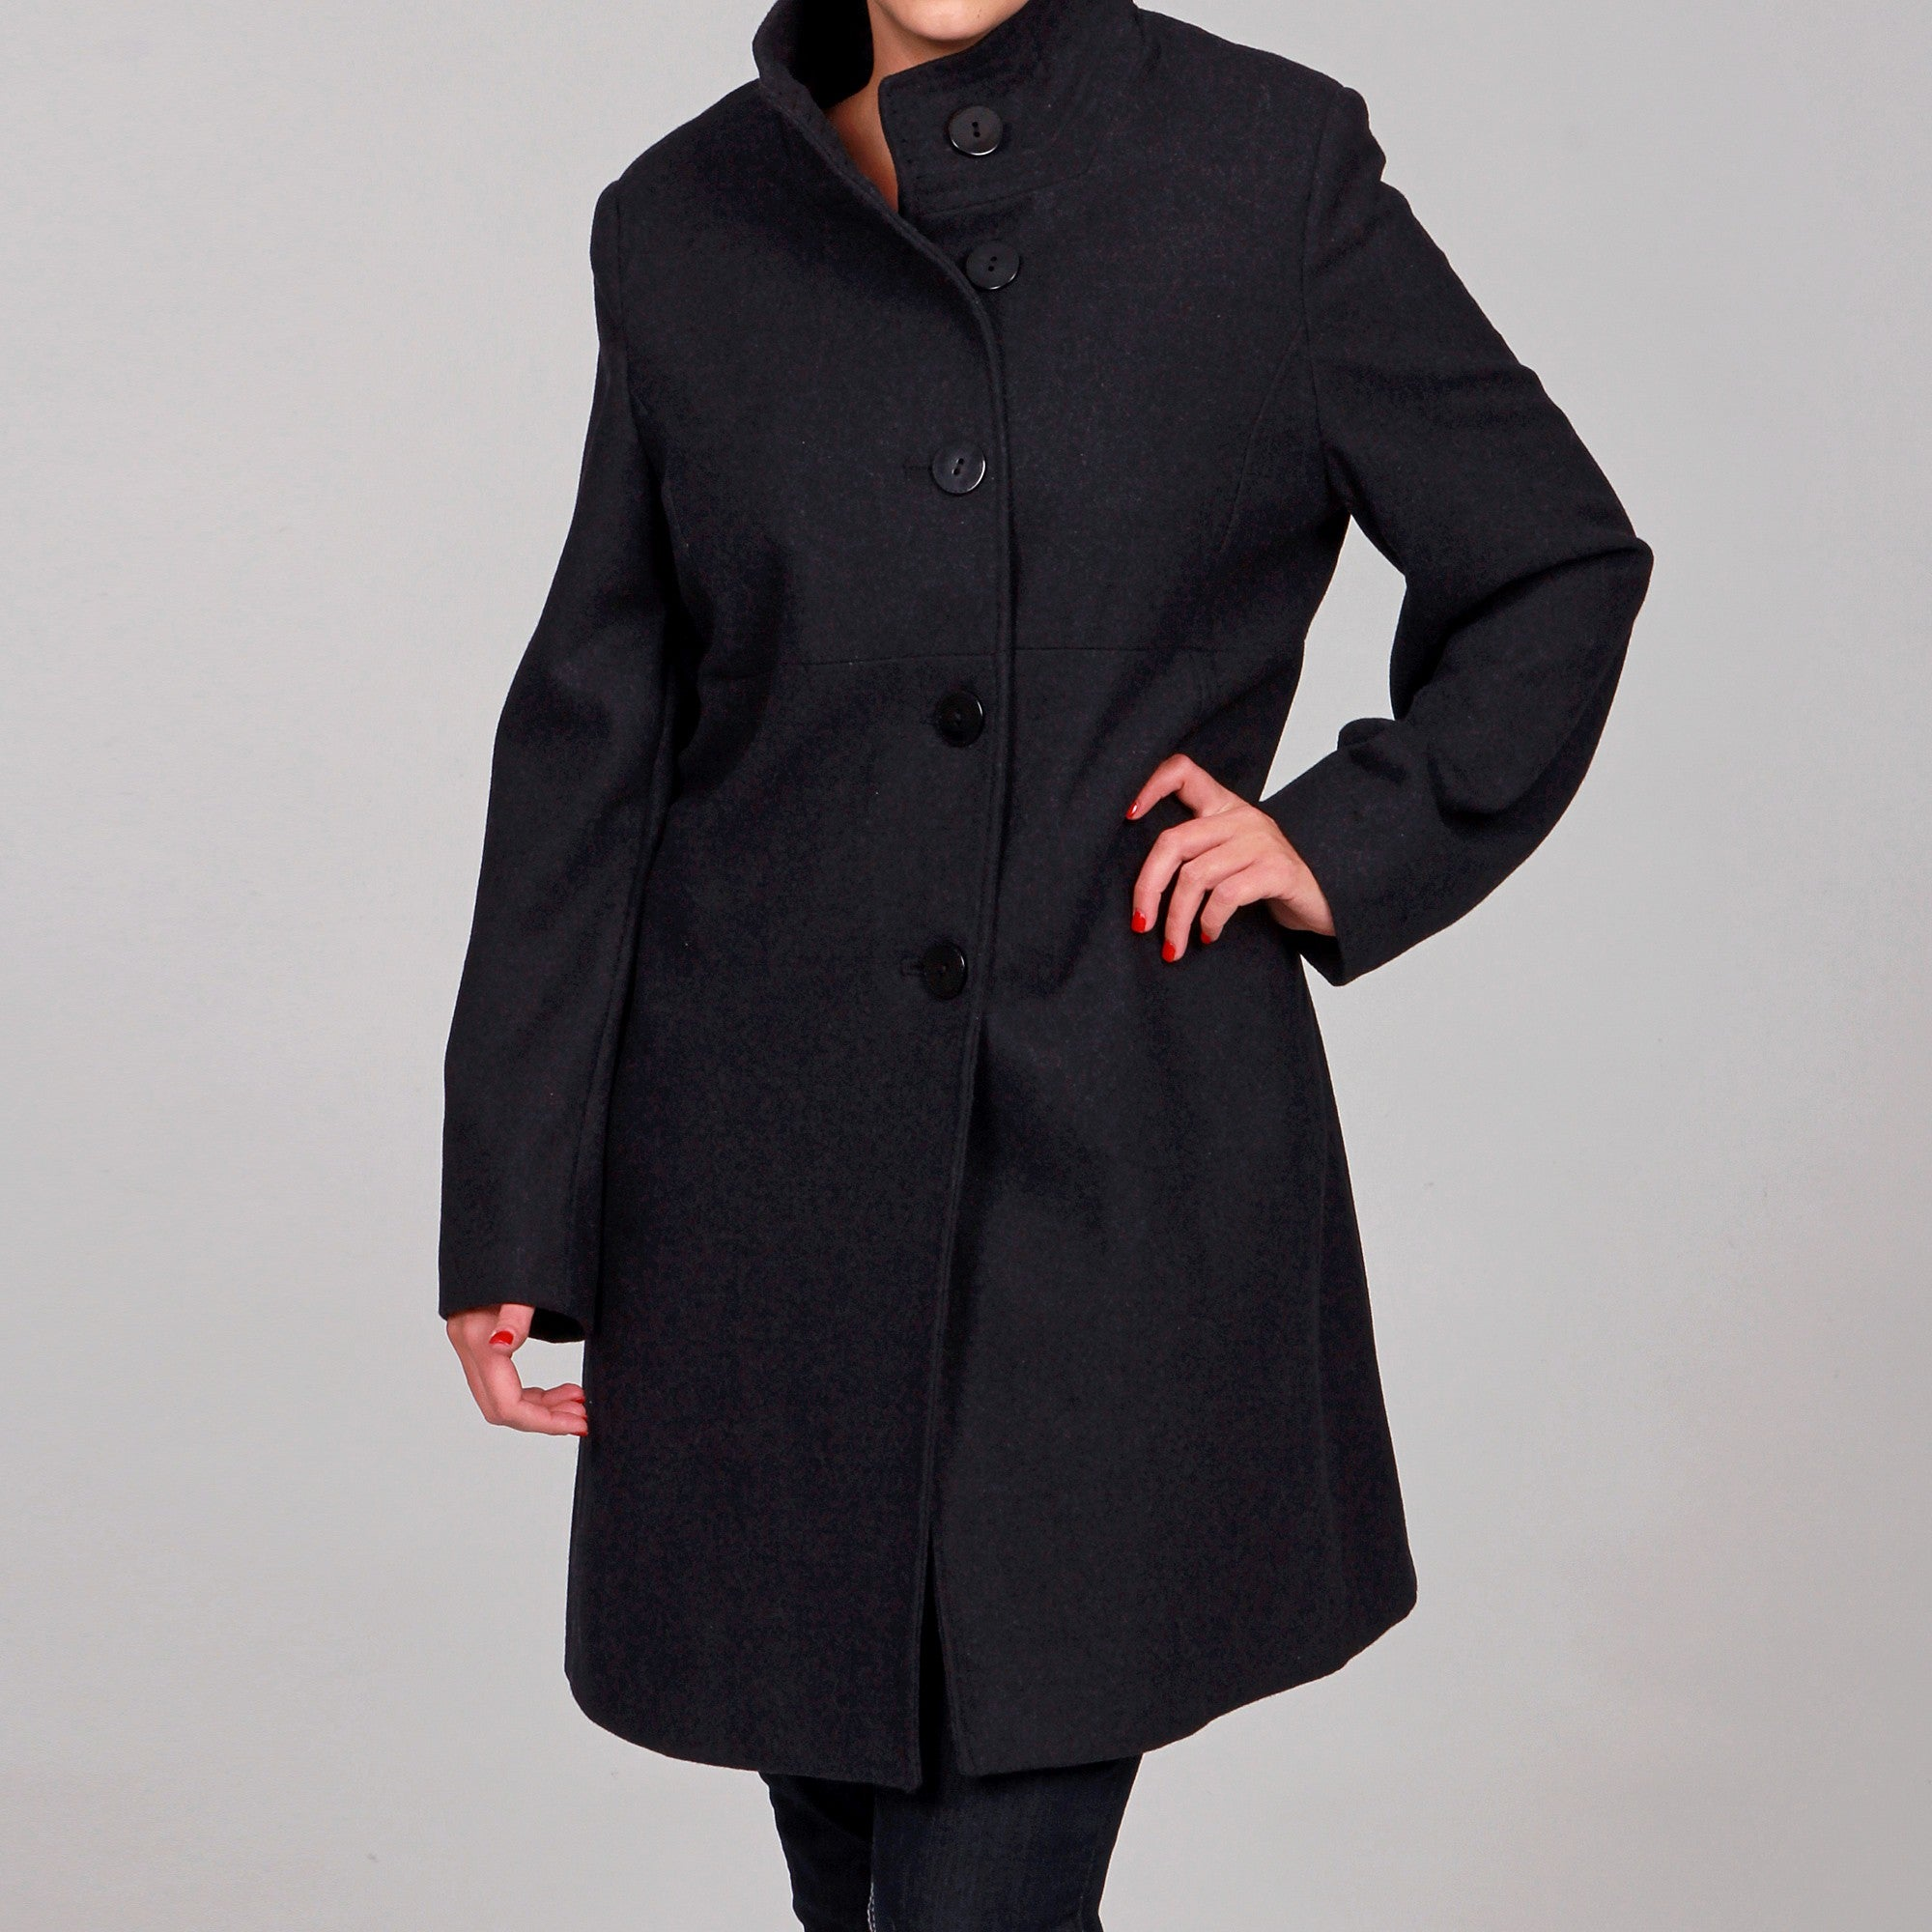 Jones New York Women\'s Plus Size Wool Blend Coat FINAL SALE